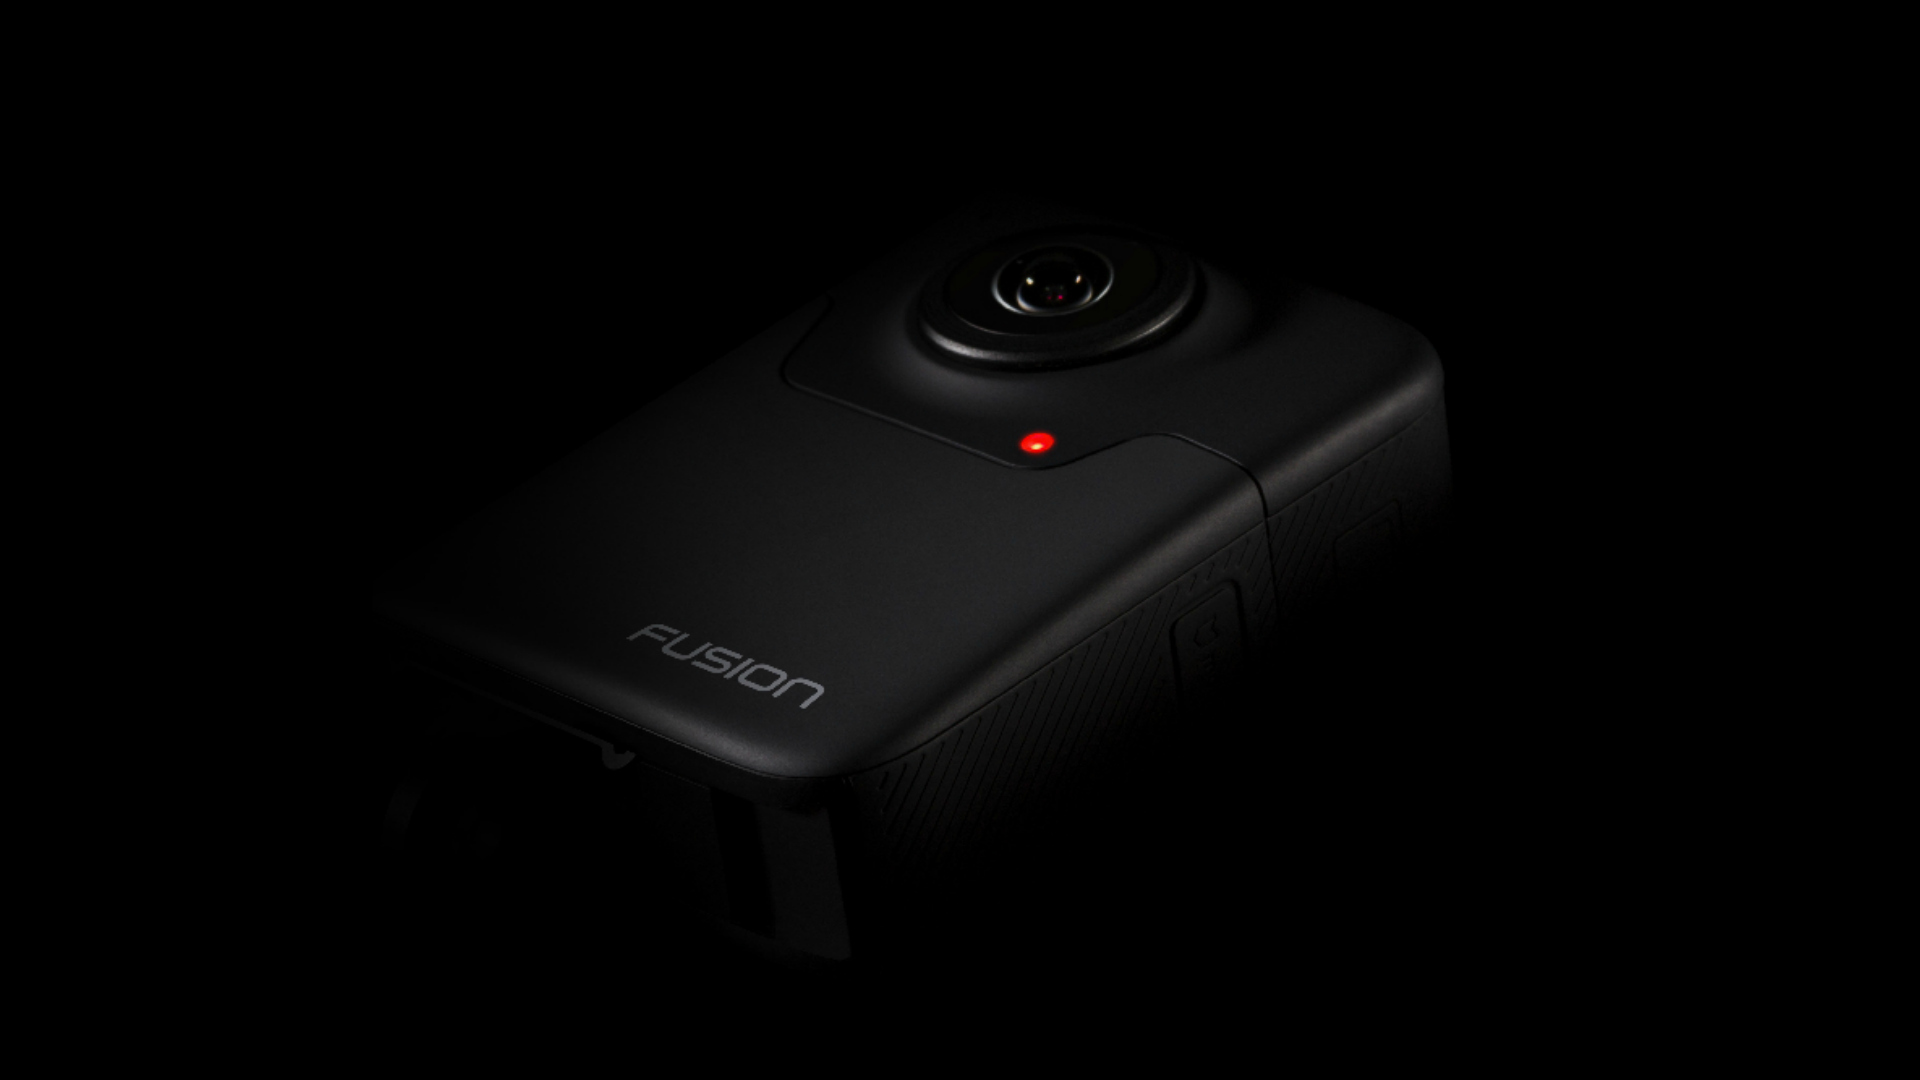 GoPro Ships First 'Fusion' 360 Cameras to 10 Select